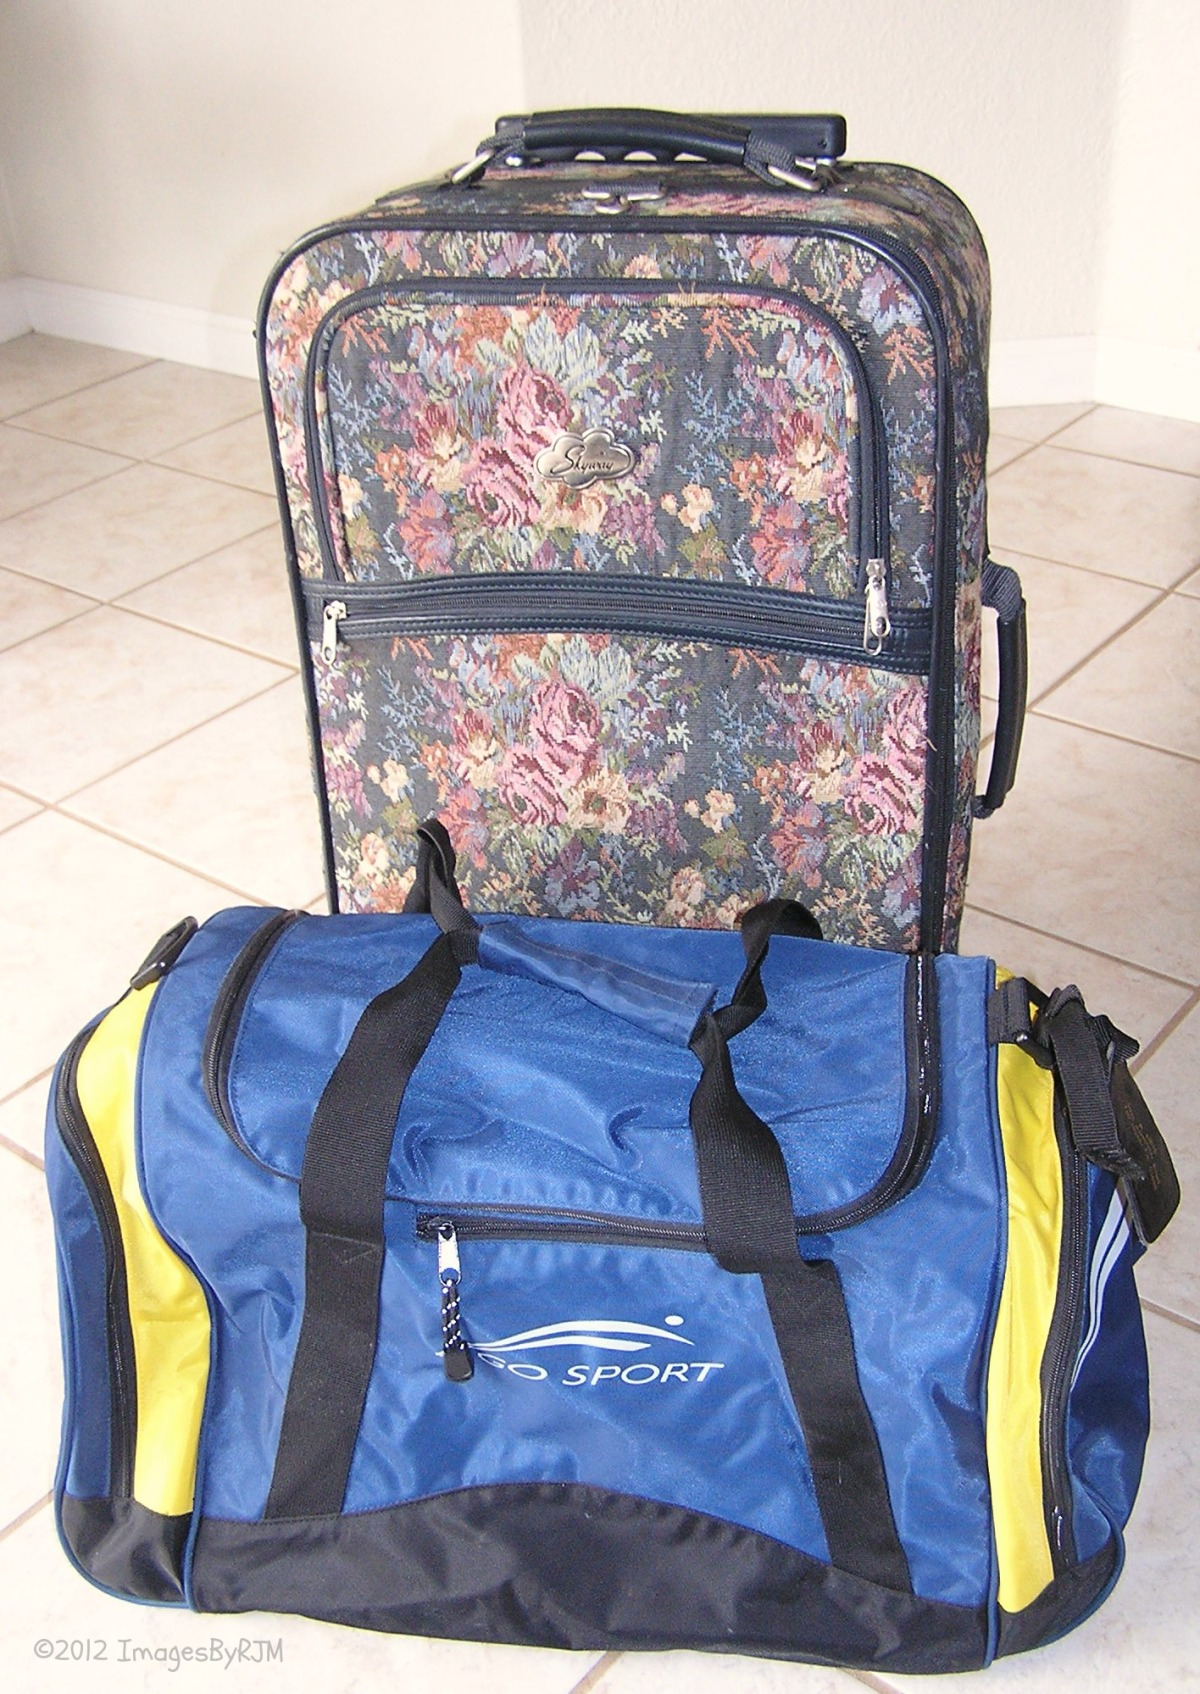 Carry-on luggage: Nylon bag, soft-sided suitcase